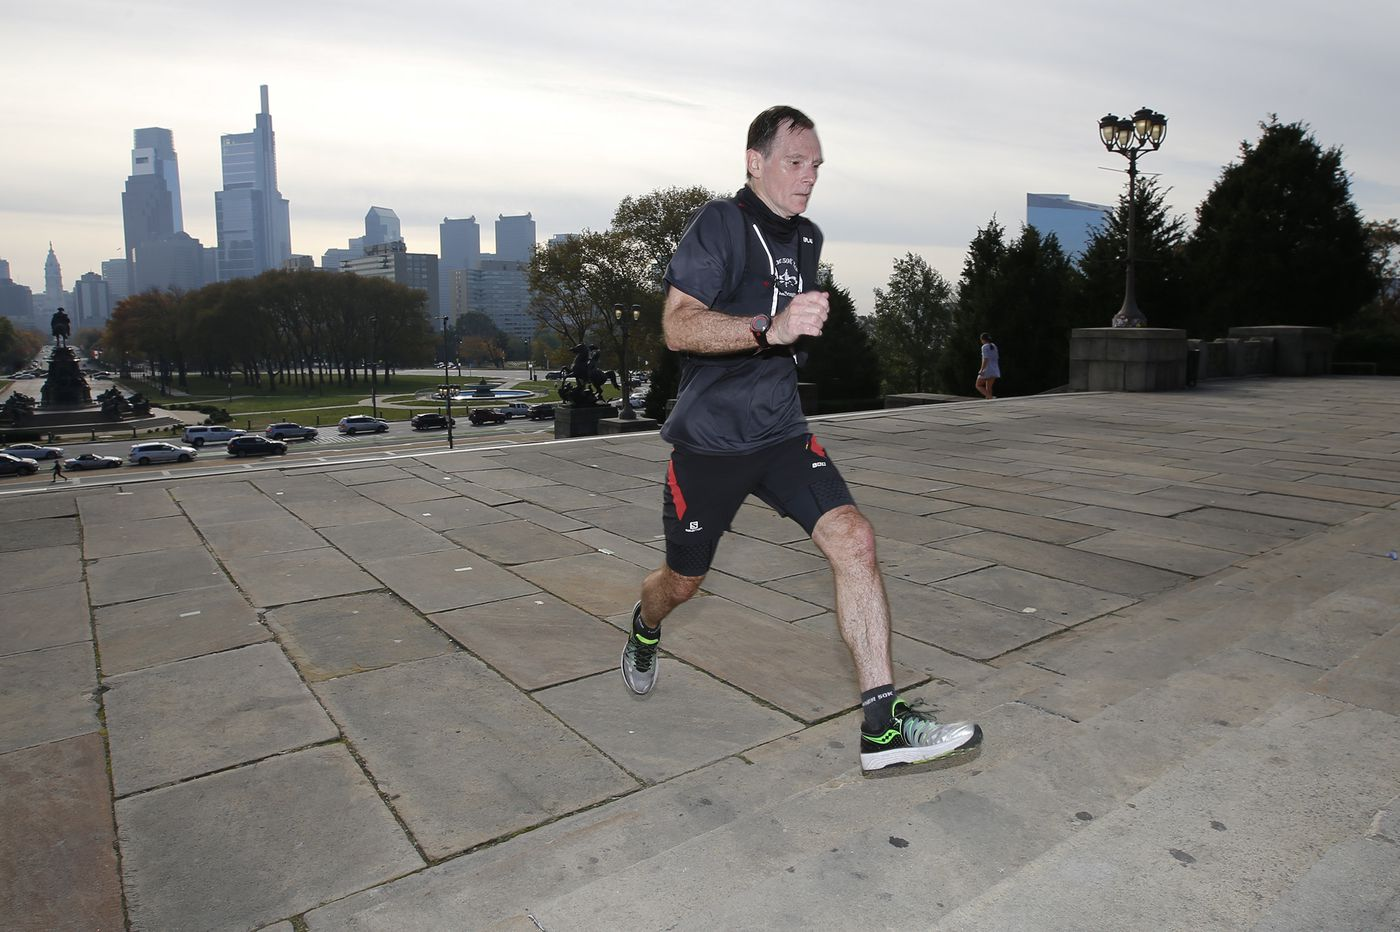 Bucks County man will spend 24 hours climbing the equivalent of Mount Everest — at the Philadelphia Museum of Art